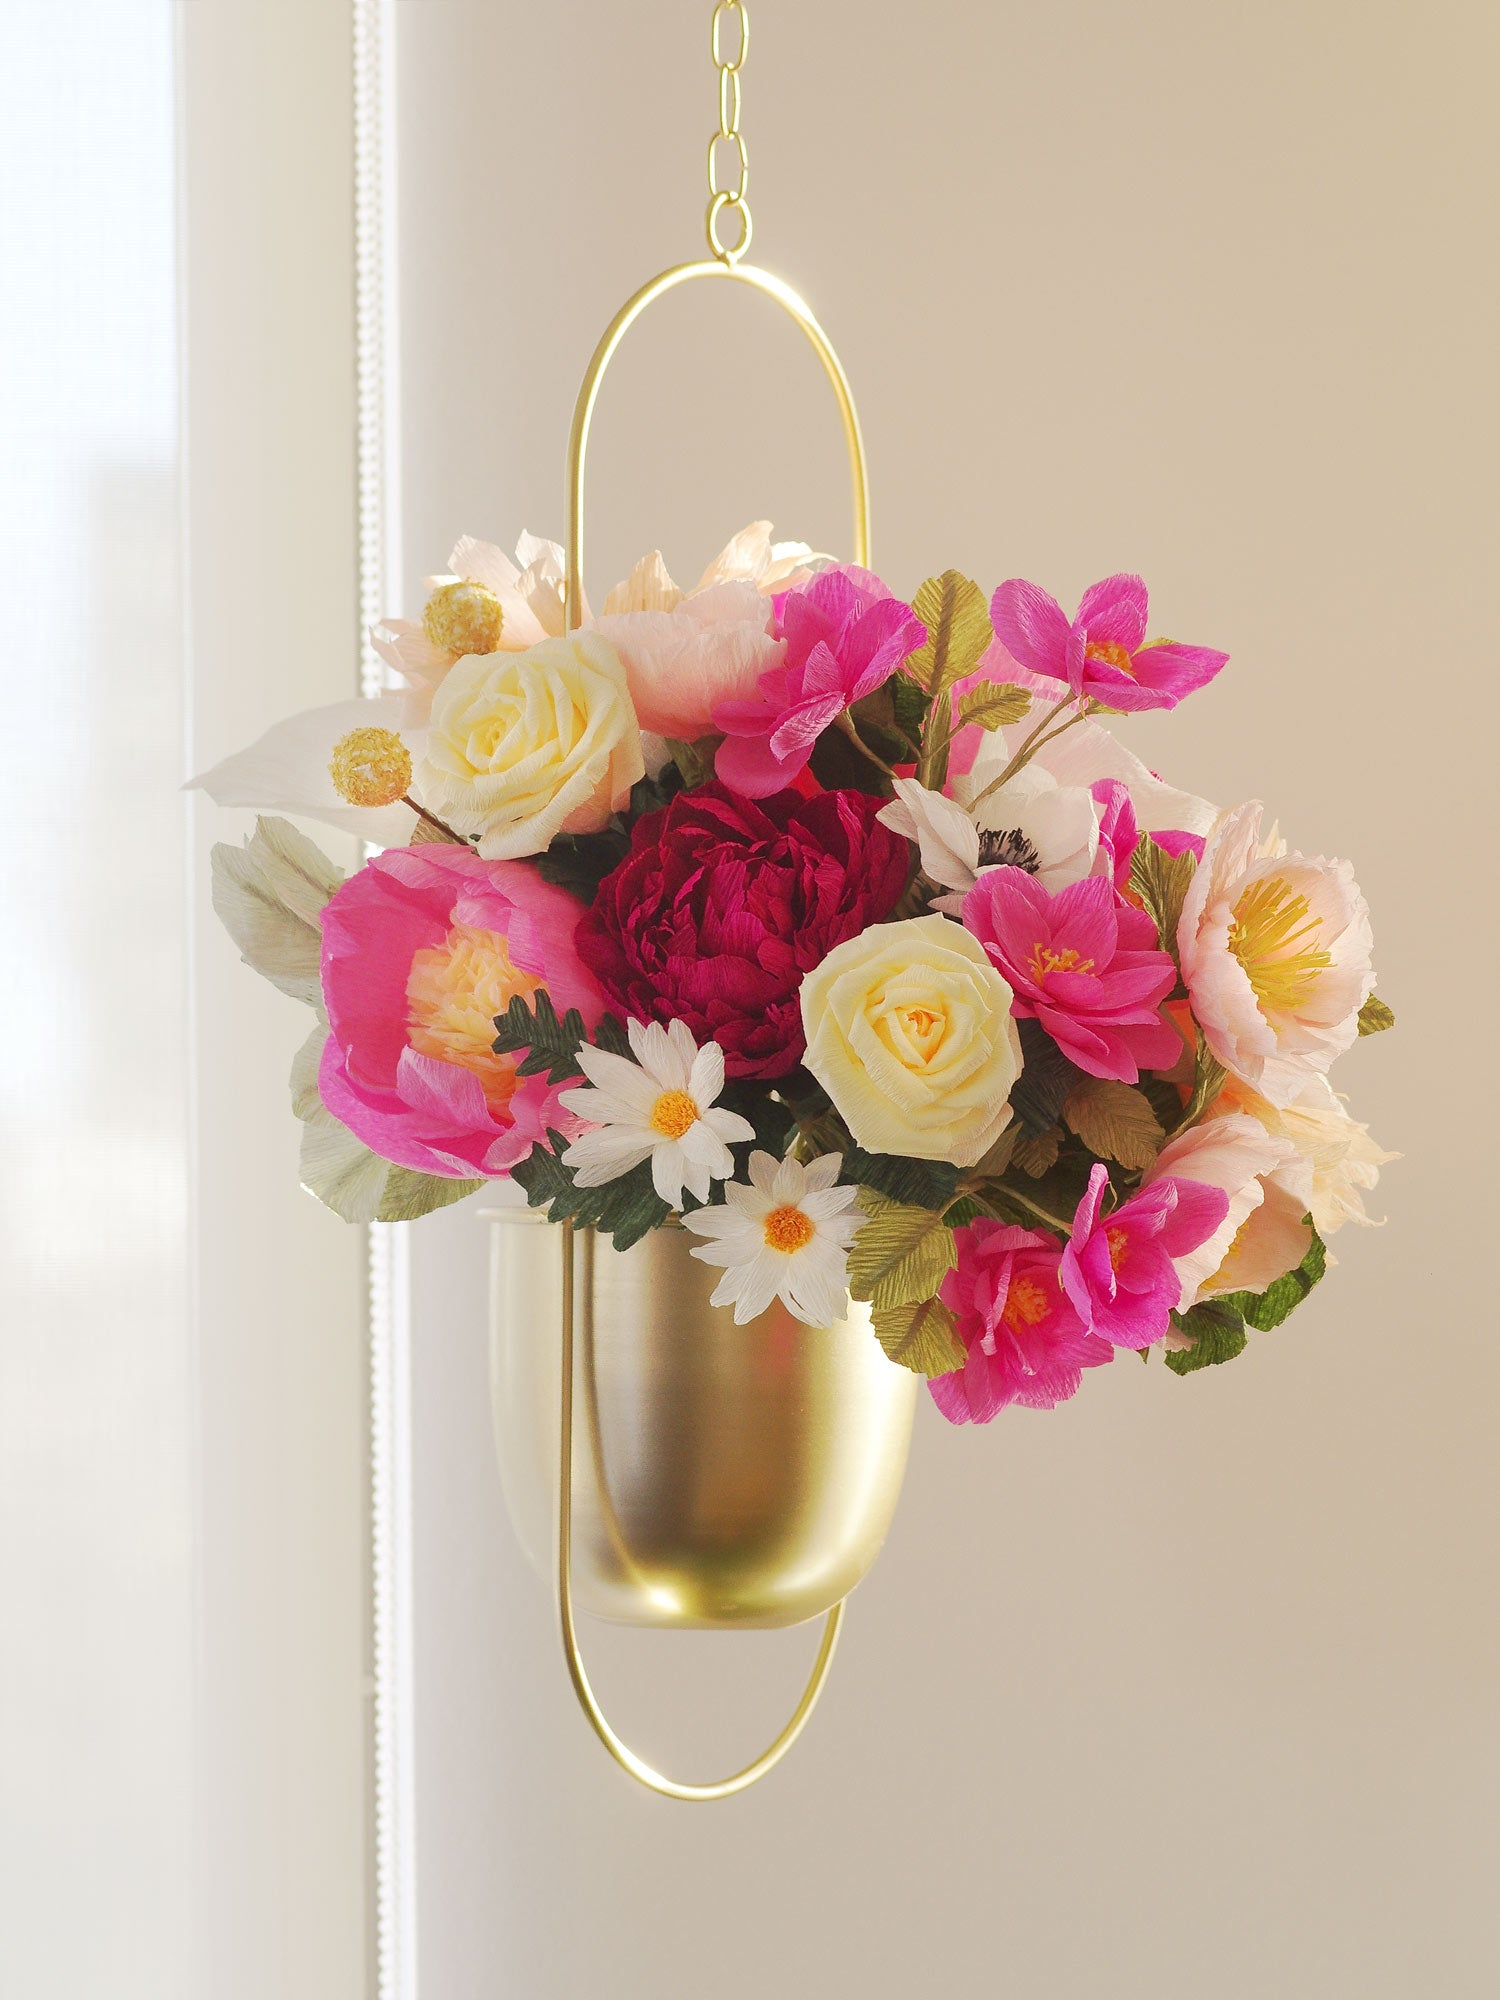 _<h1>Full Of Love, Not Allergies</h1><p> Our pollen free, fragrance free blooms make them a perfect gift for the sensitive recipient. They also make for excellent décor in medical offices.</p>